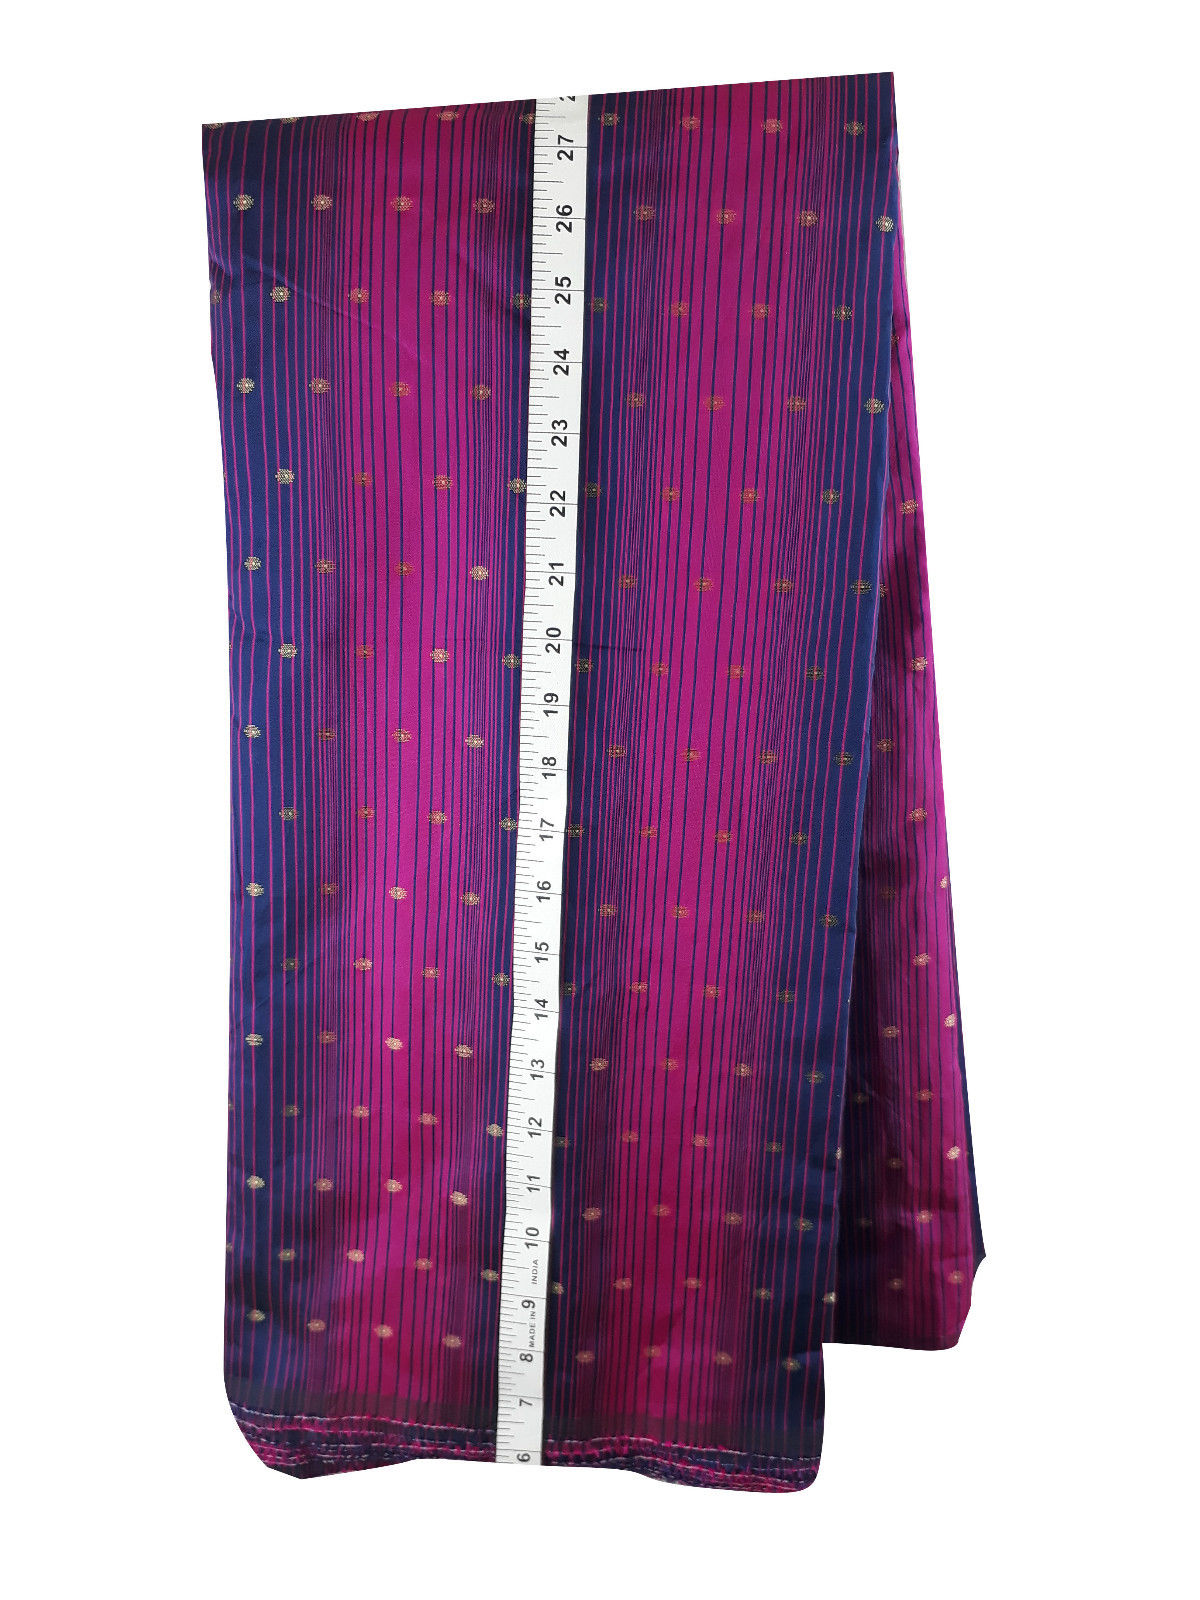 fabric sale online india blouse fabric online shopping Embroidered Polyester Magenta, Purple, Gold 46 inches Wide 1678